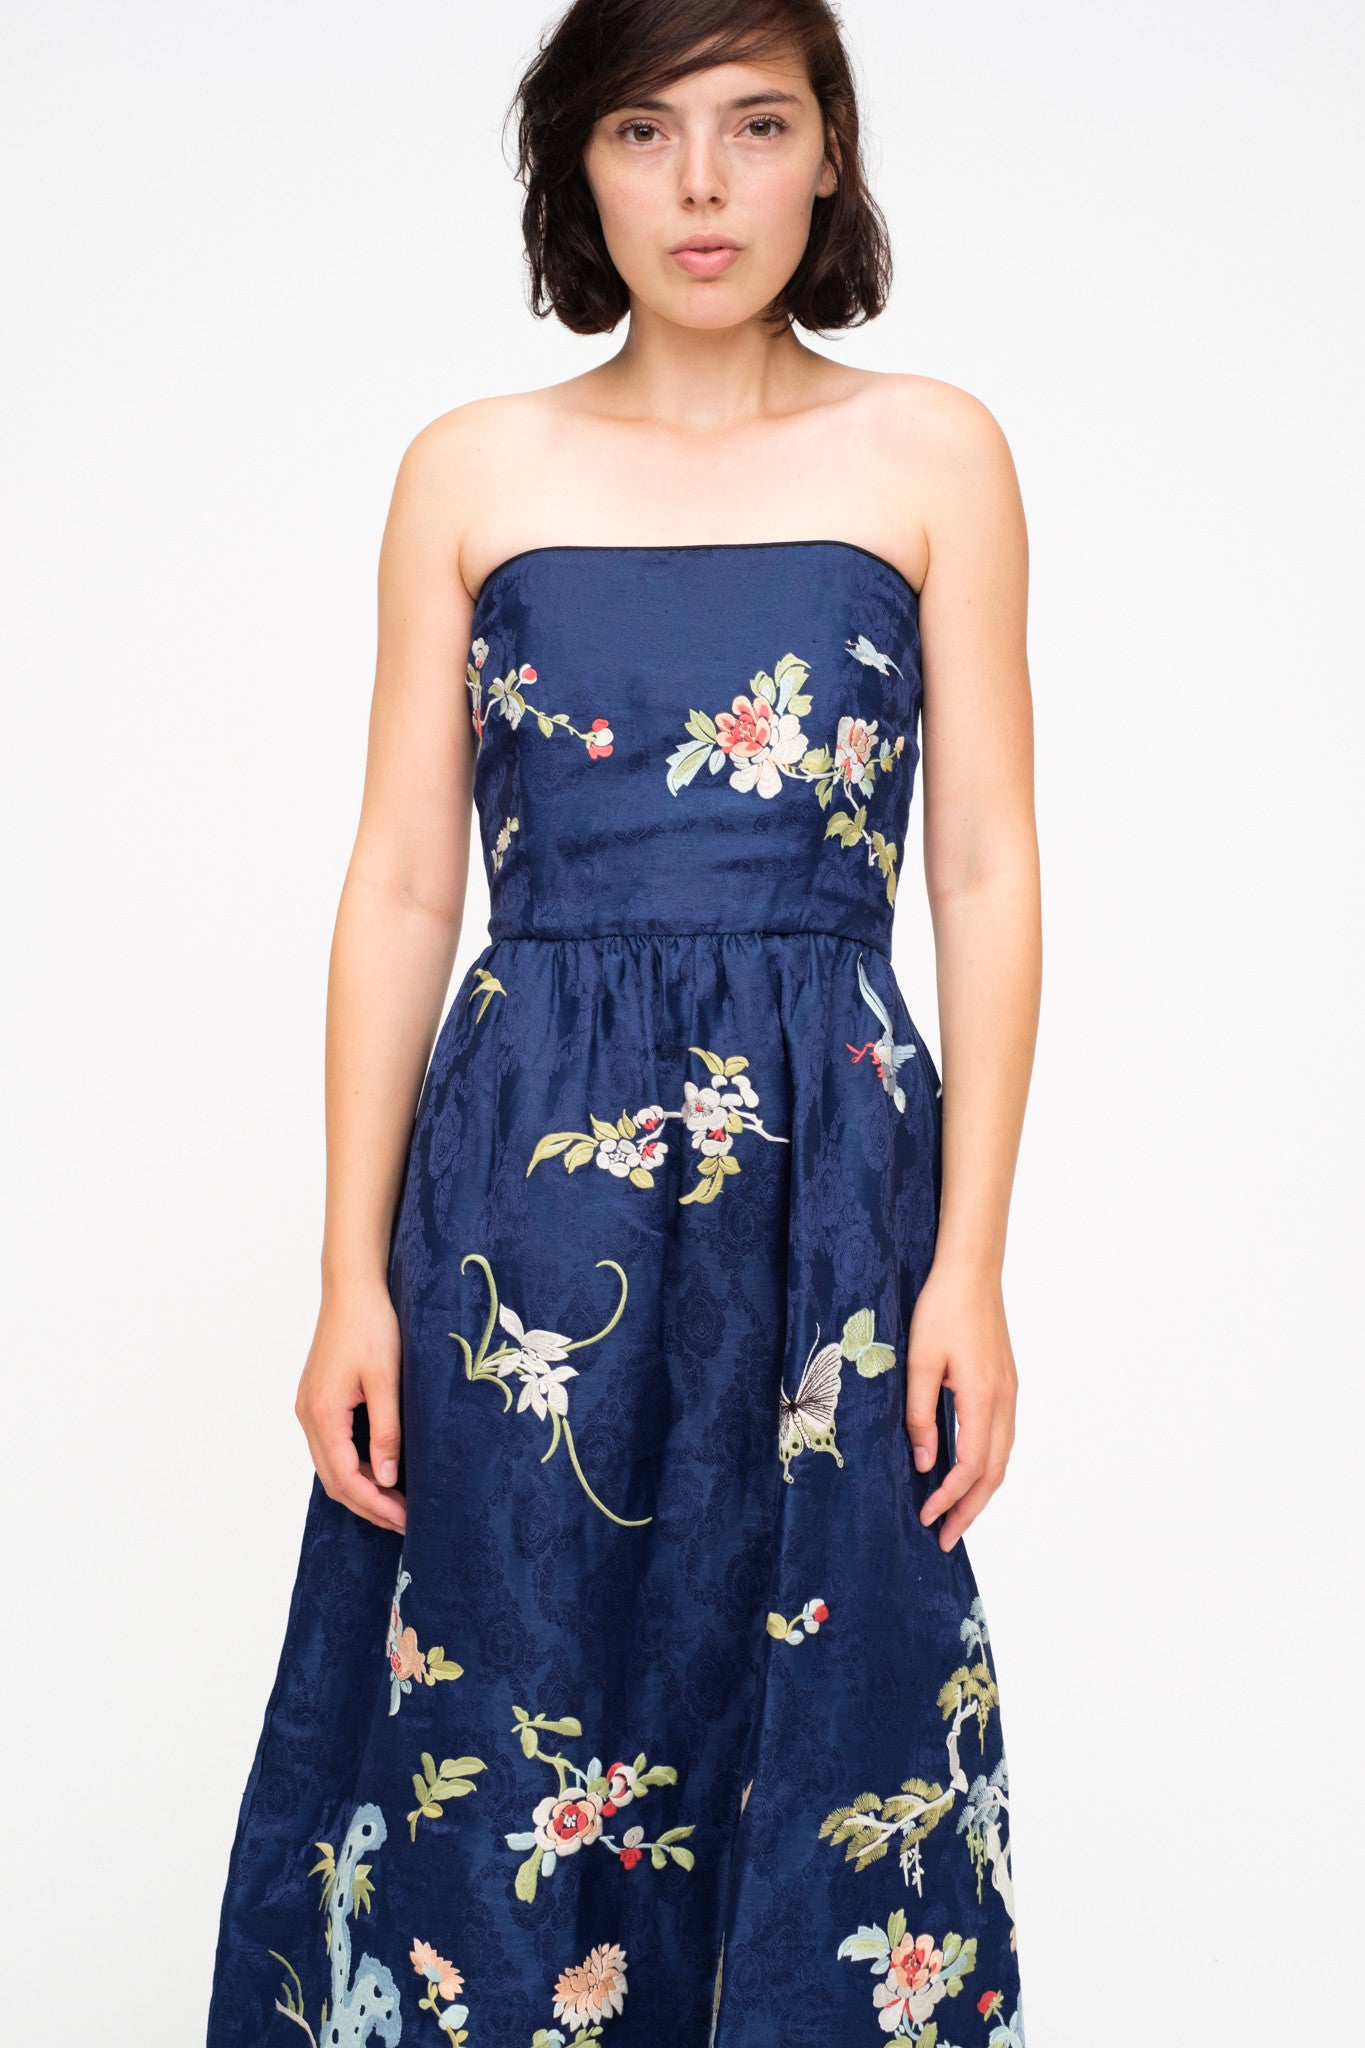 Floral Embroidered Strapless Party Dress